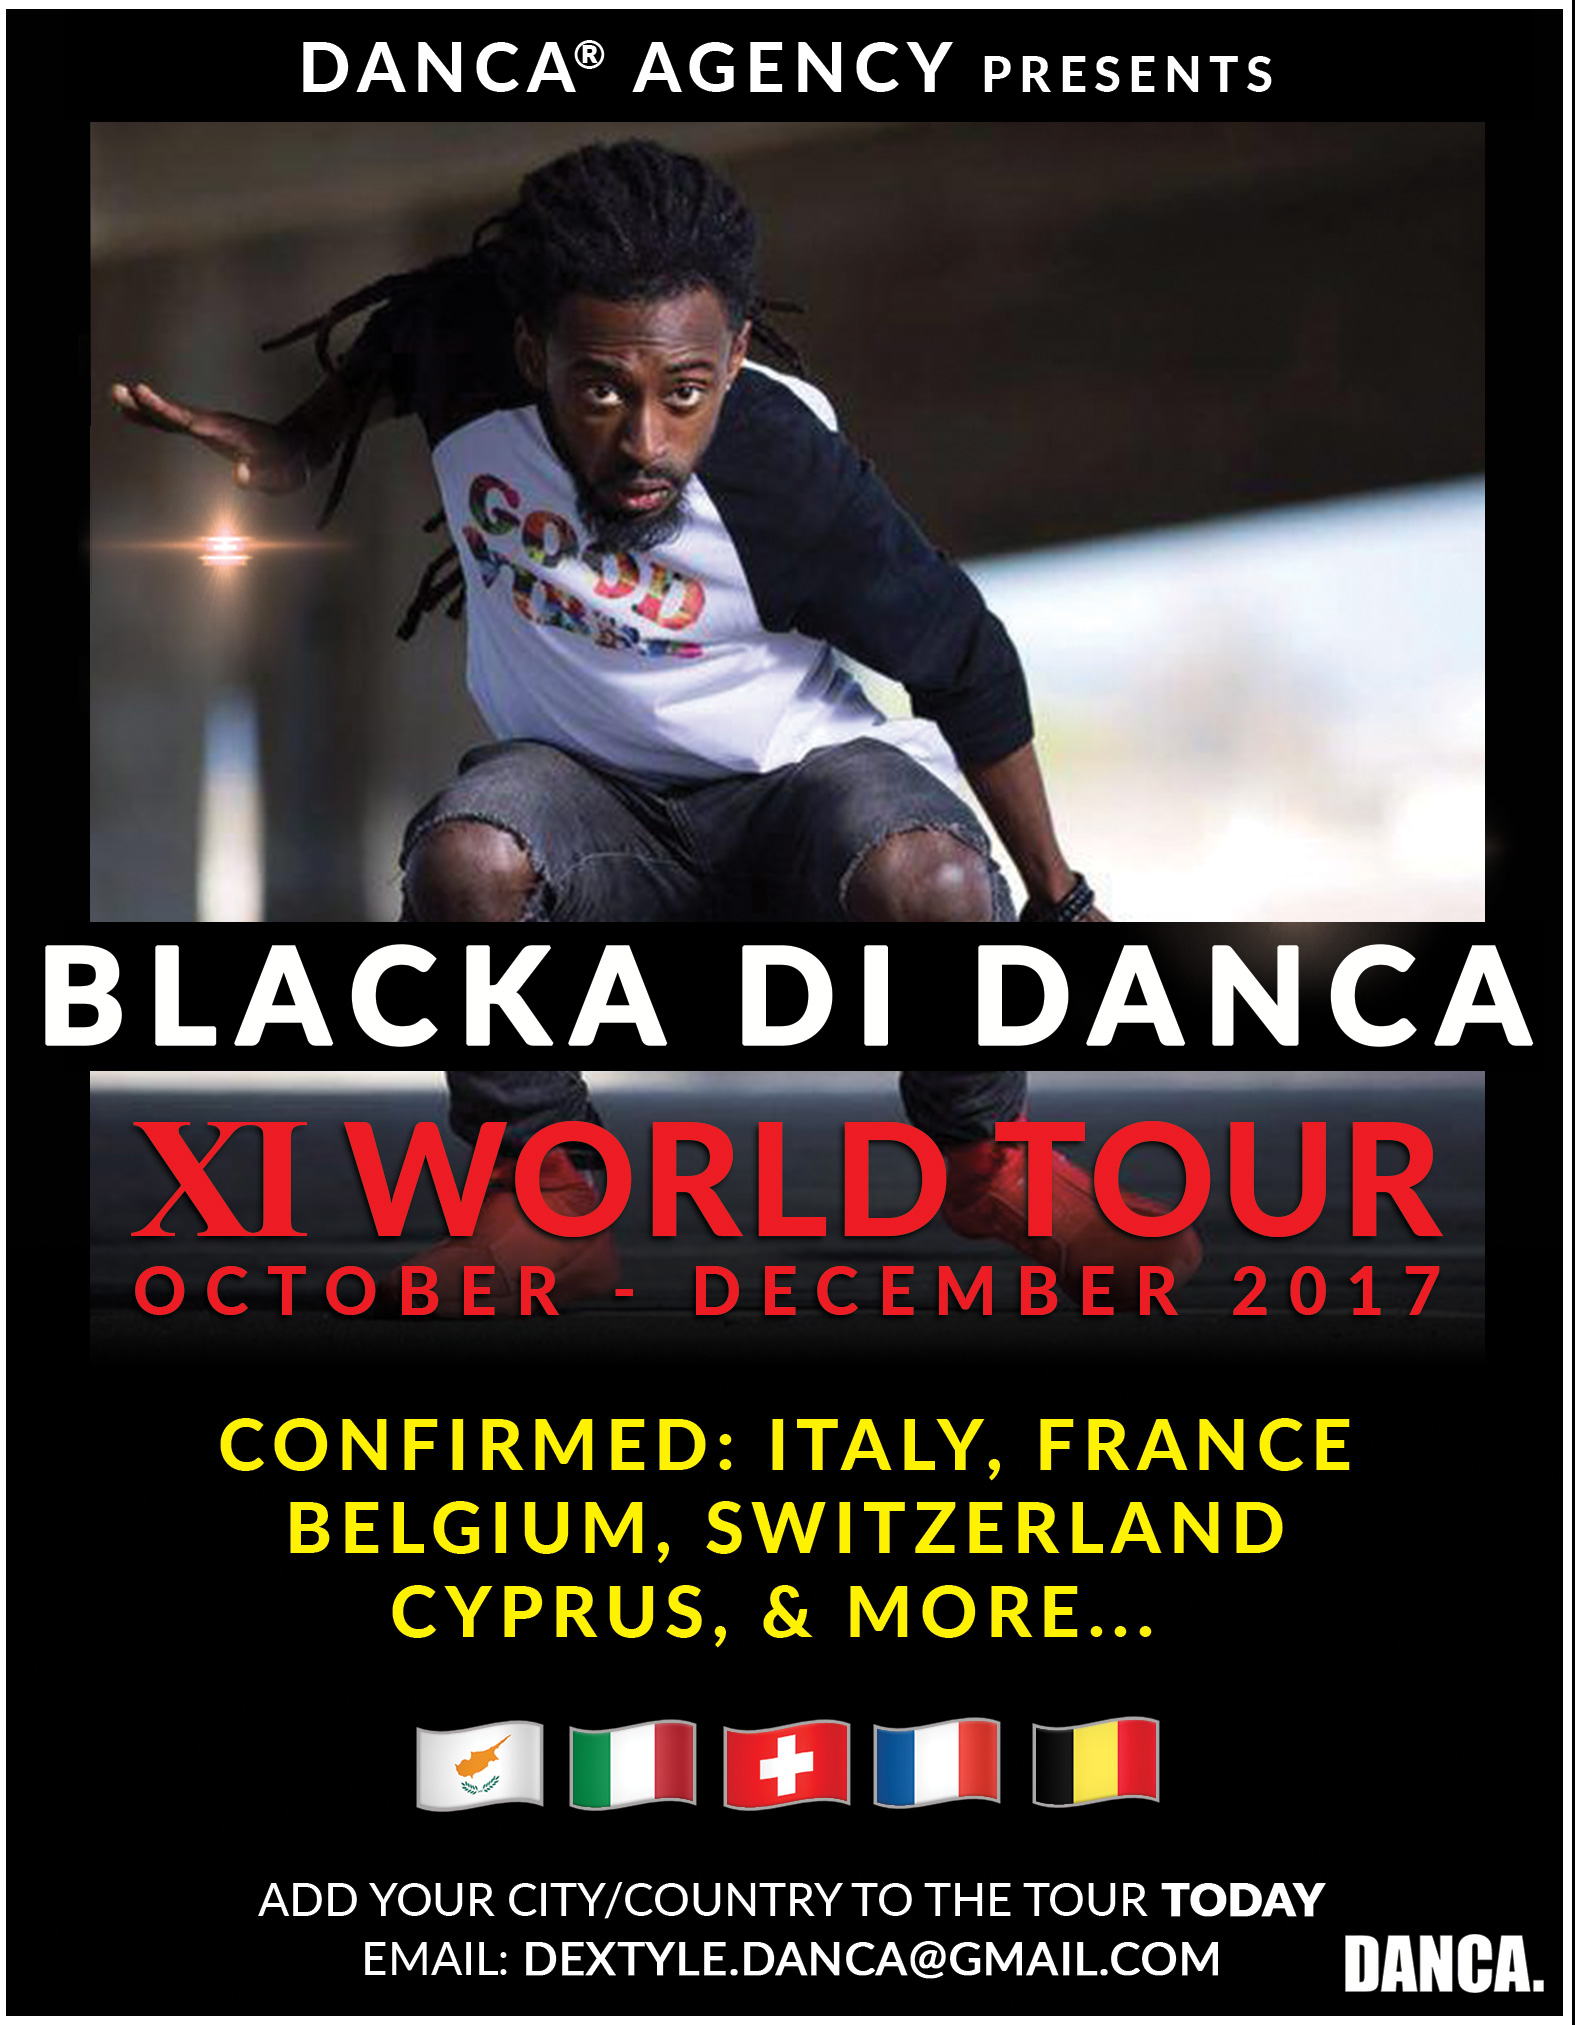 Blacka Di Danca XI World Tour BUSS A DANCE